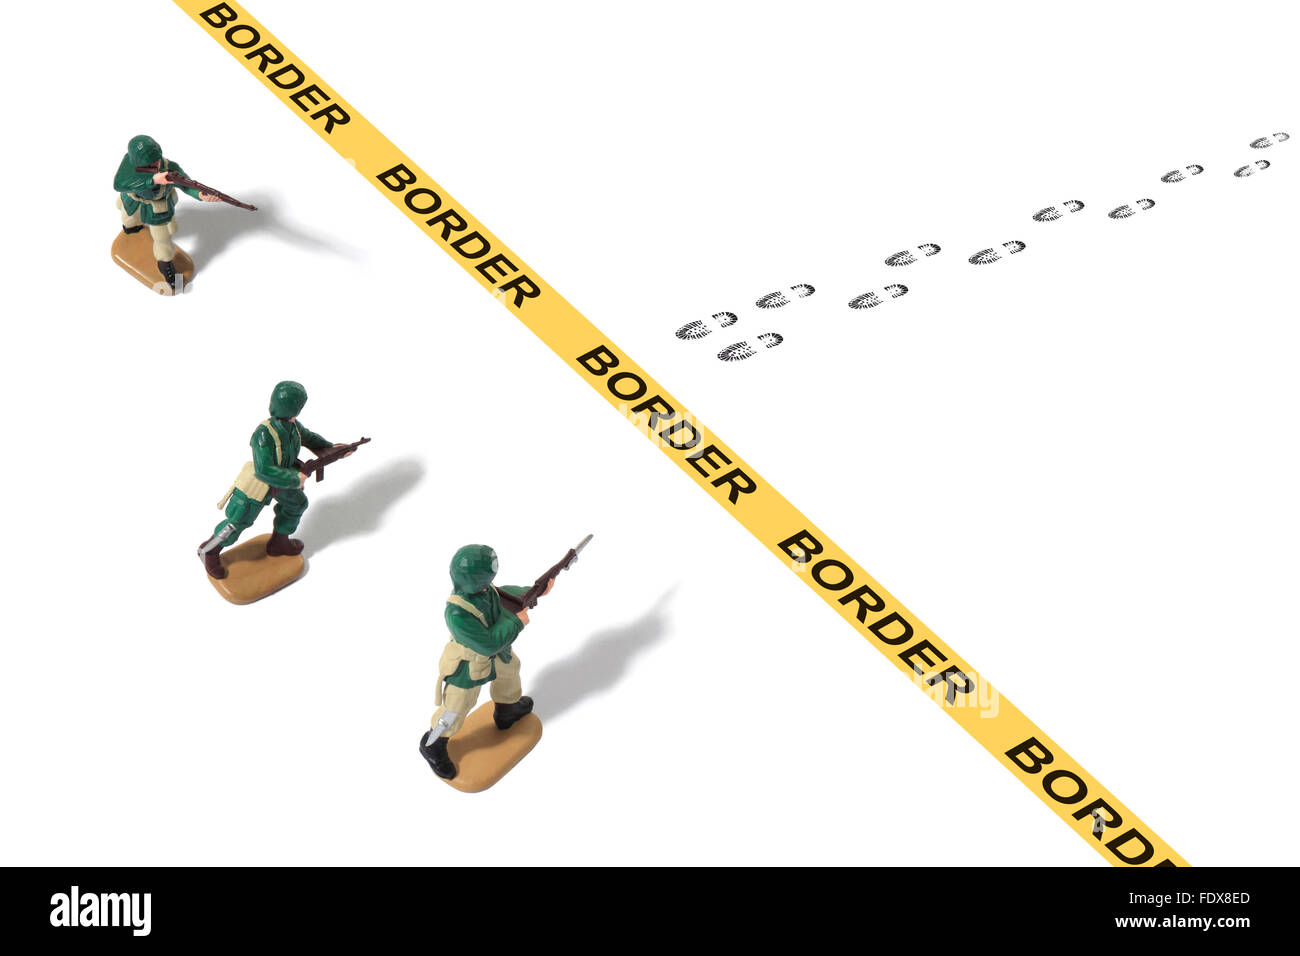 Studio shot of toy Army men protecting border from threat - Stock Image